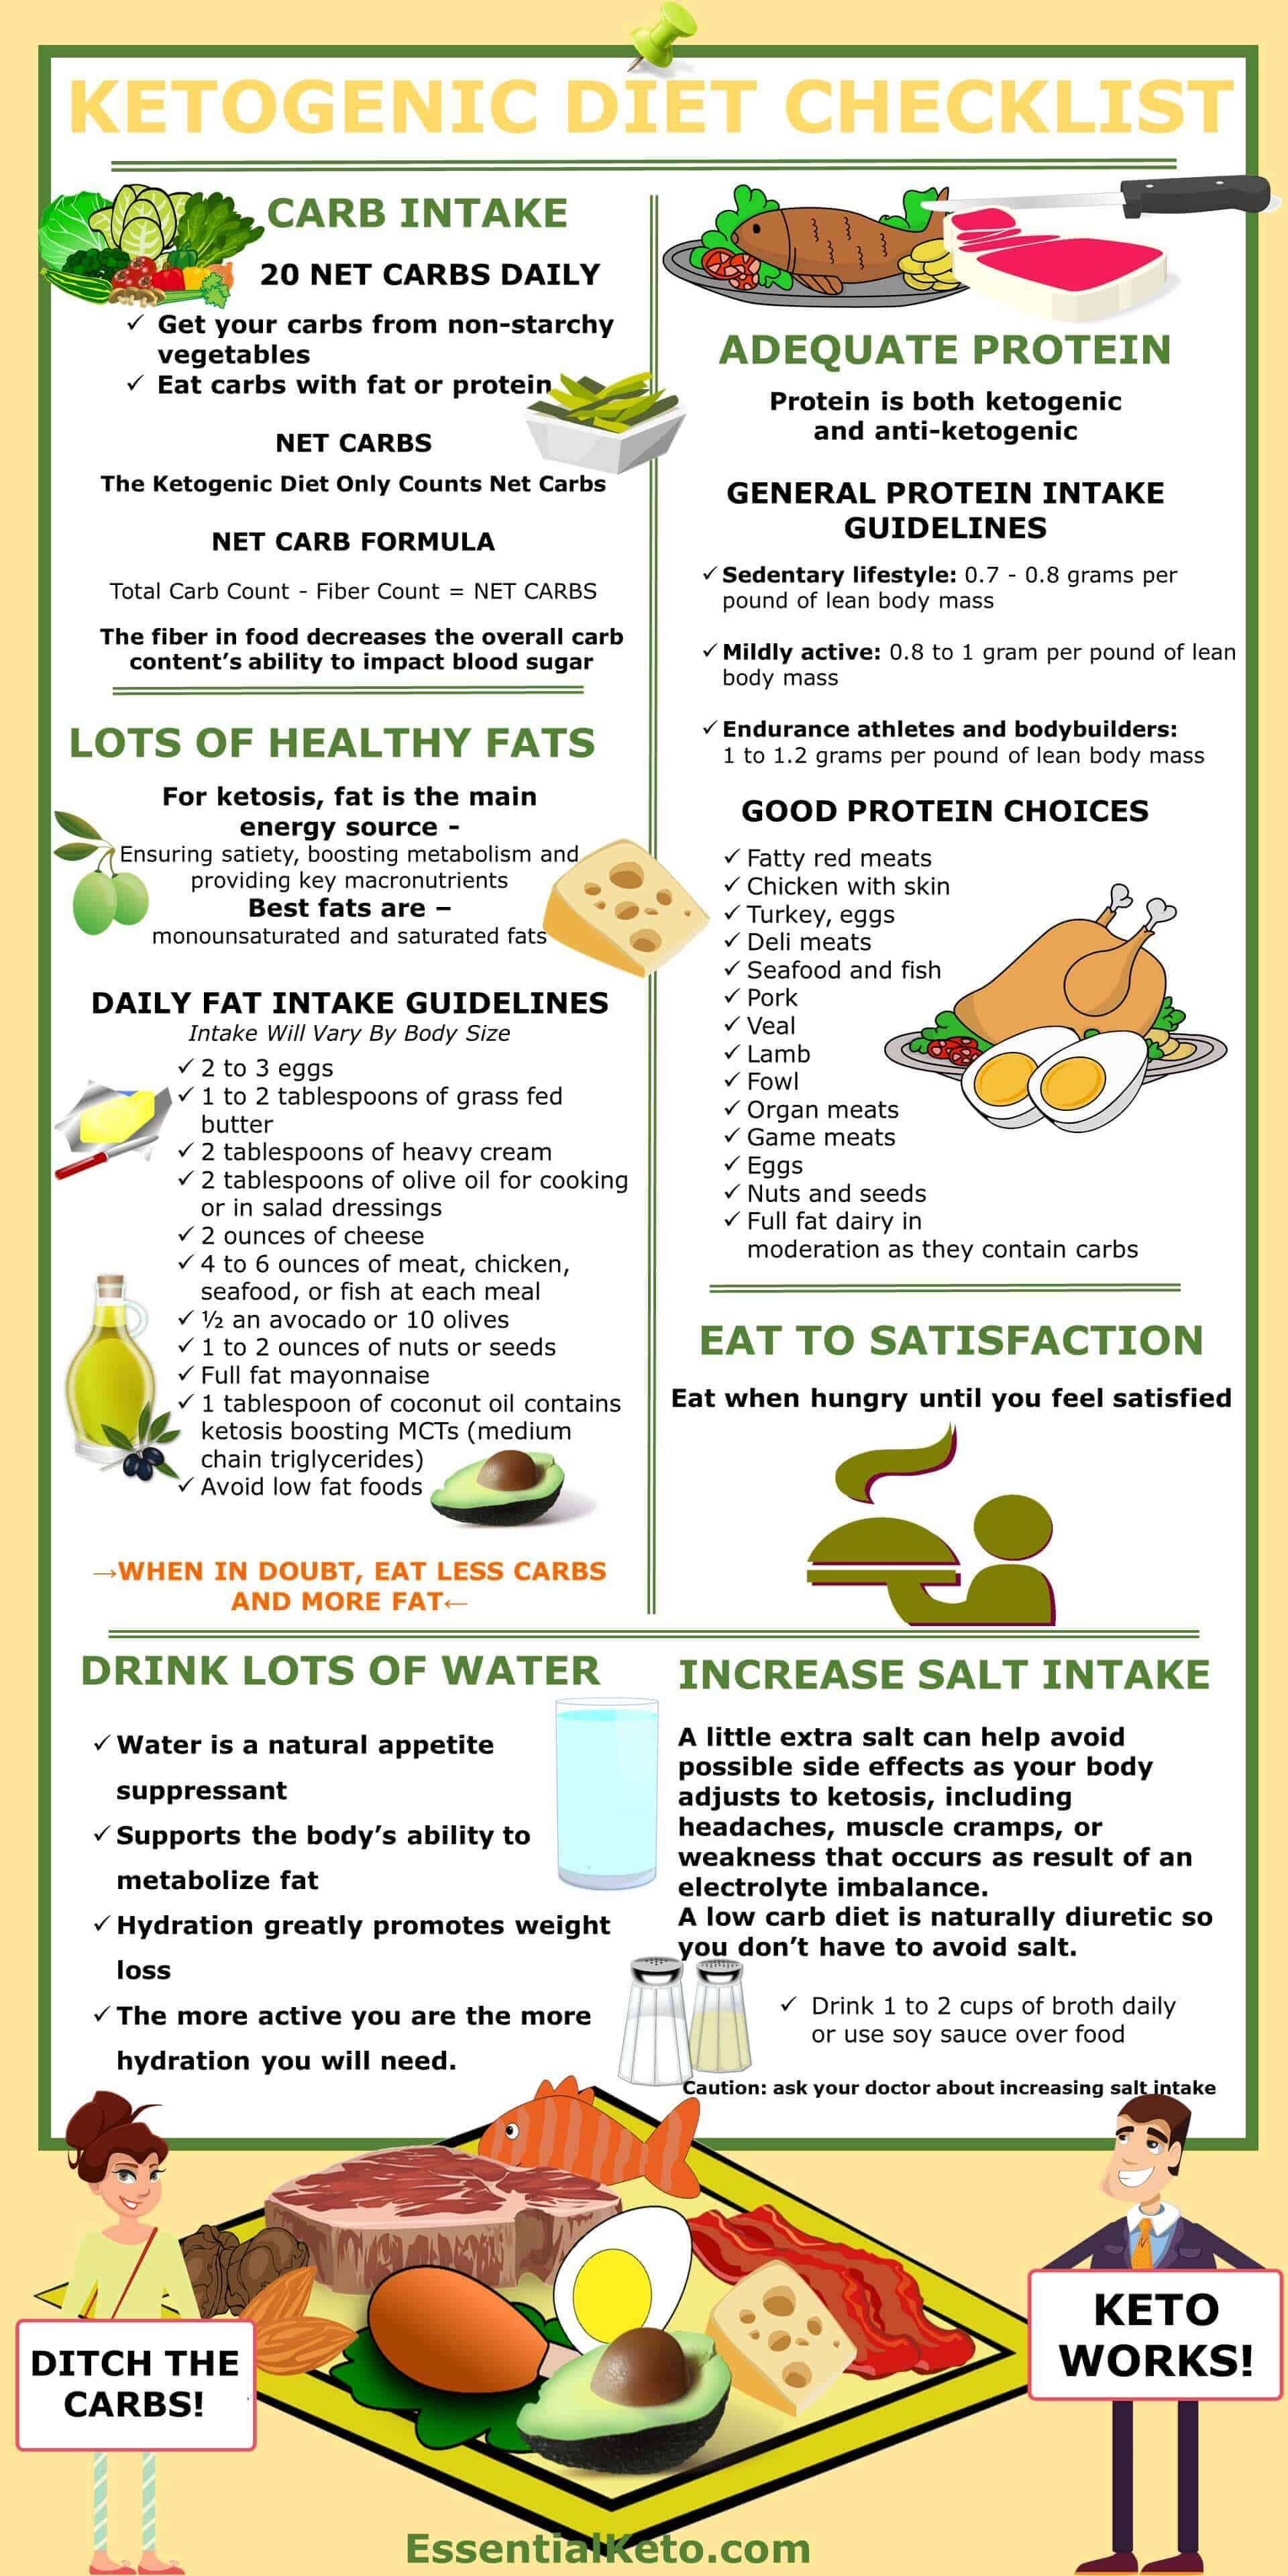 How much fat should you eat on the keto diet